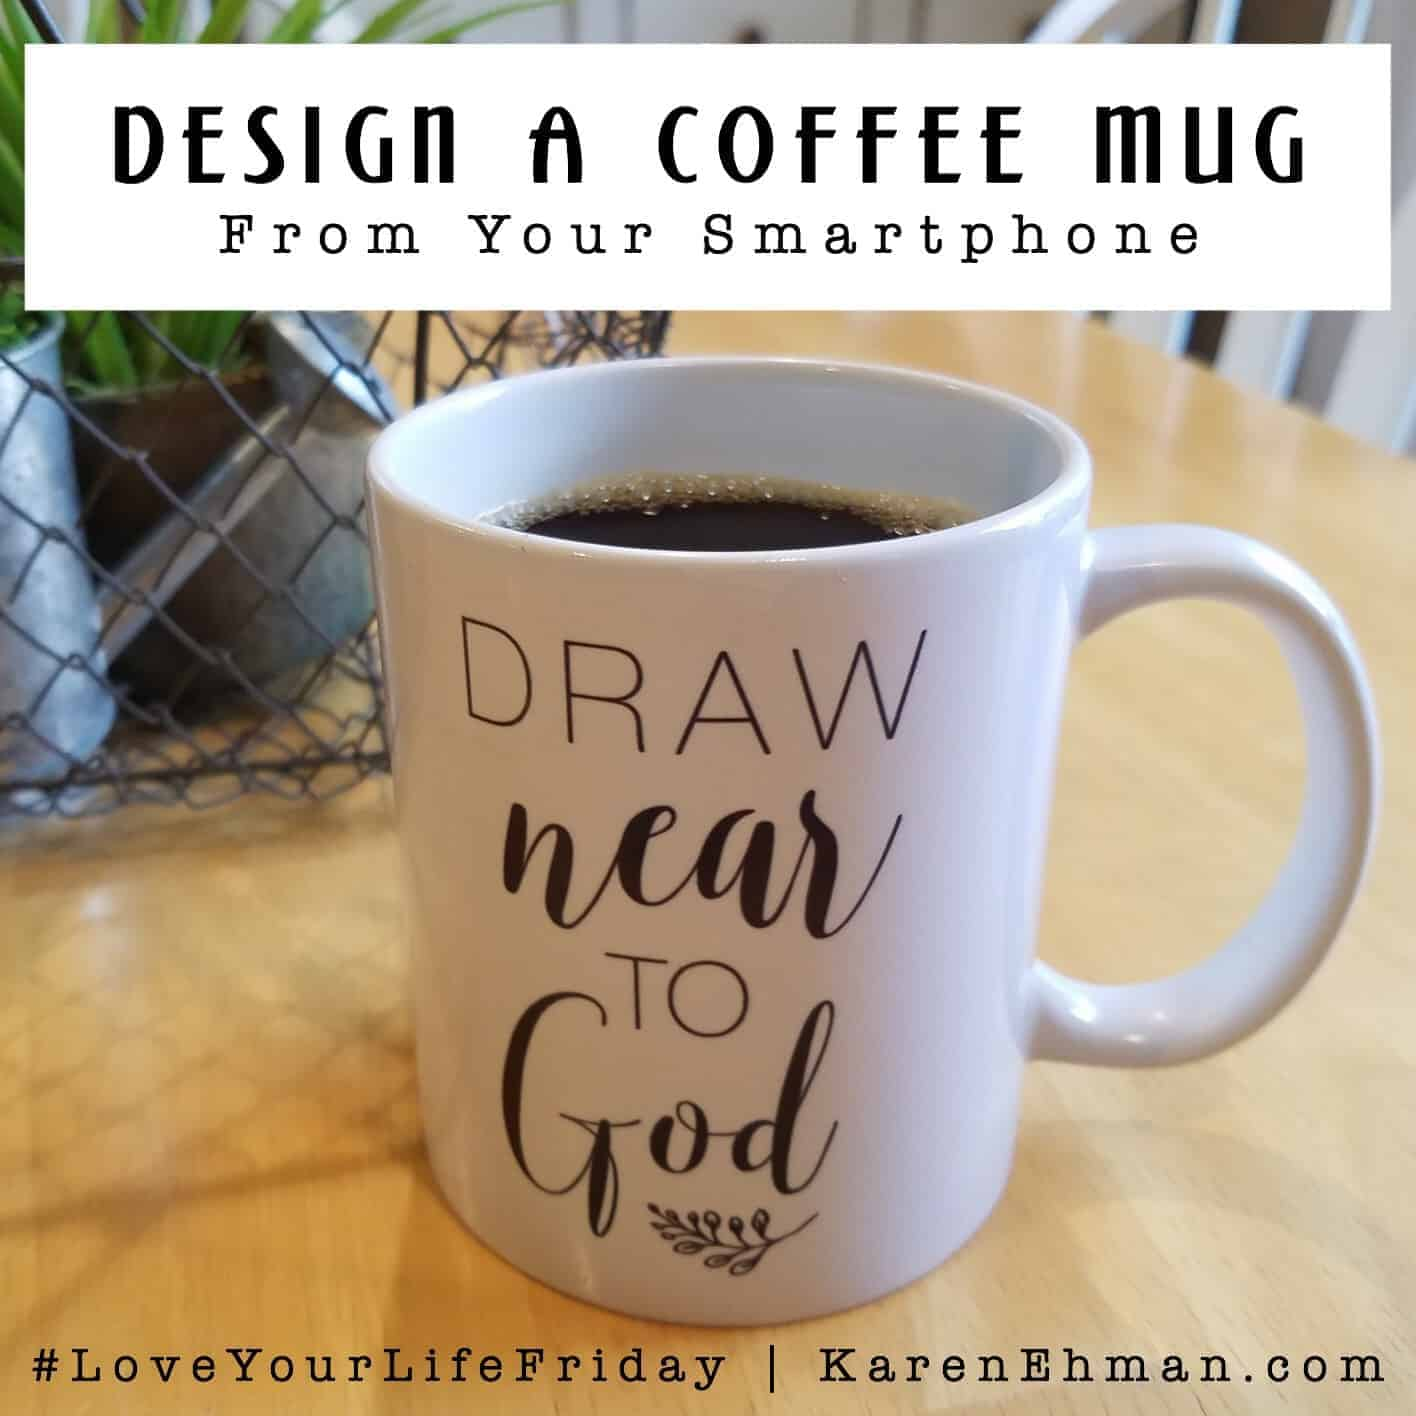 #LoveYourLifeFriday at KarenEhman.com